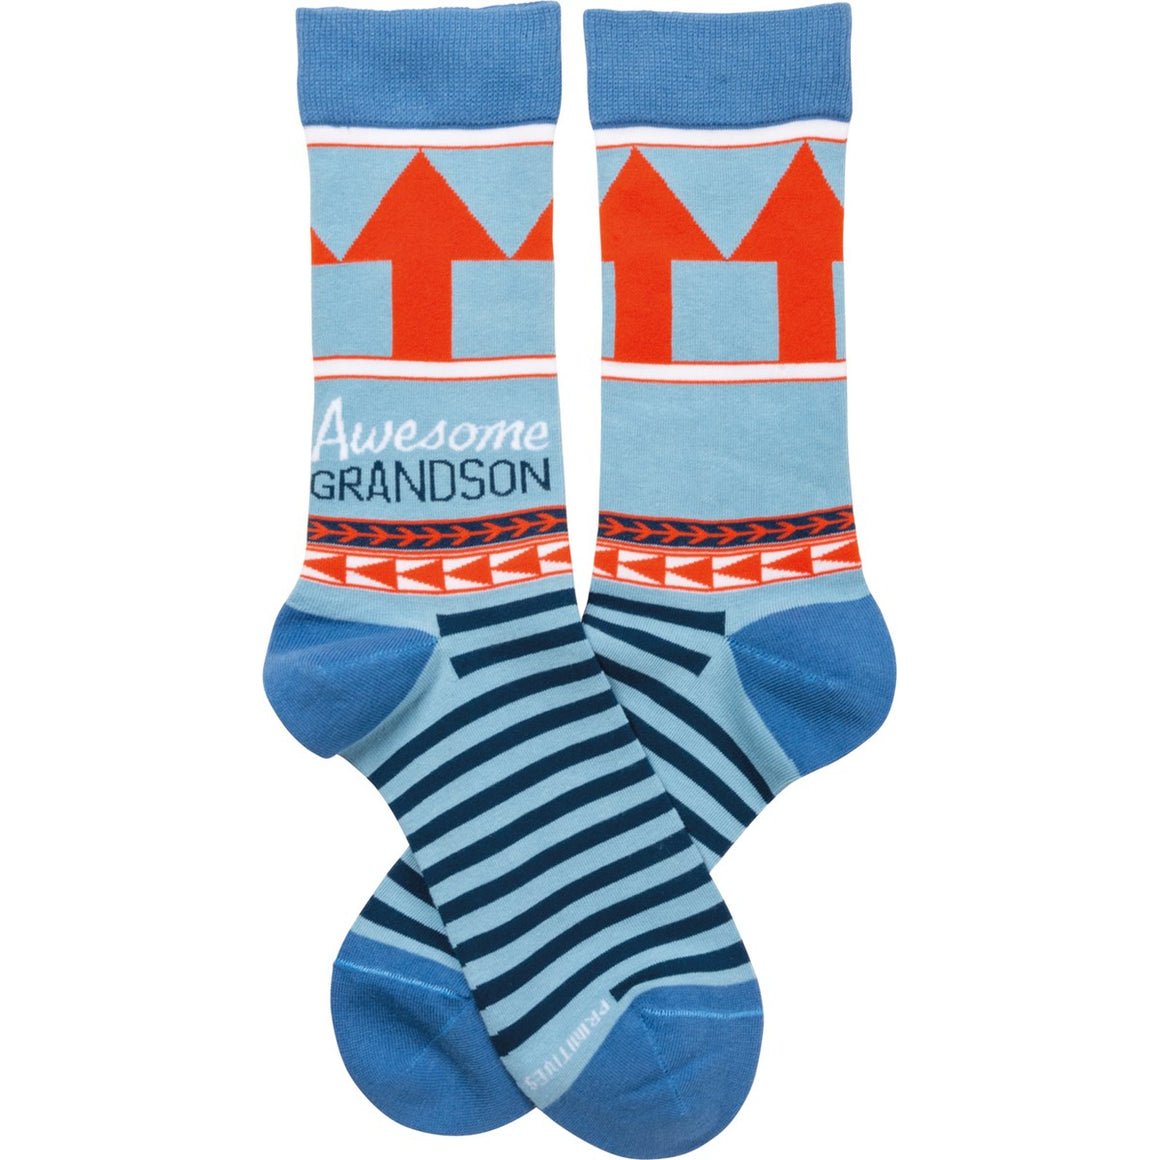 Awesome Grandson Socks